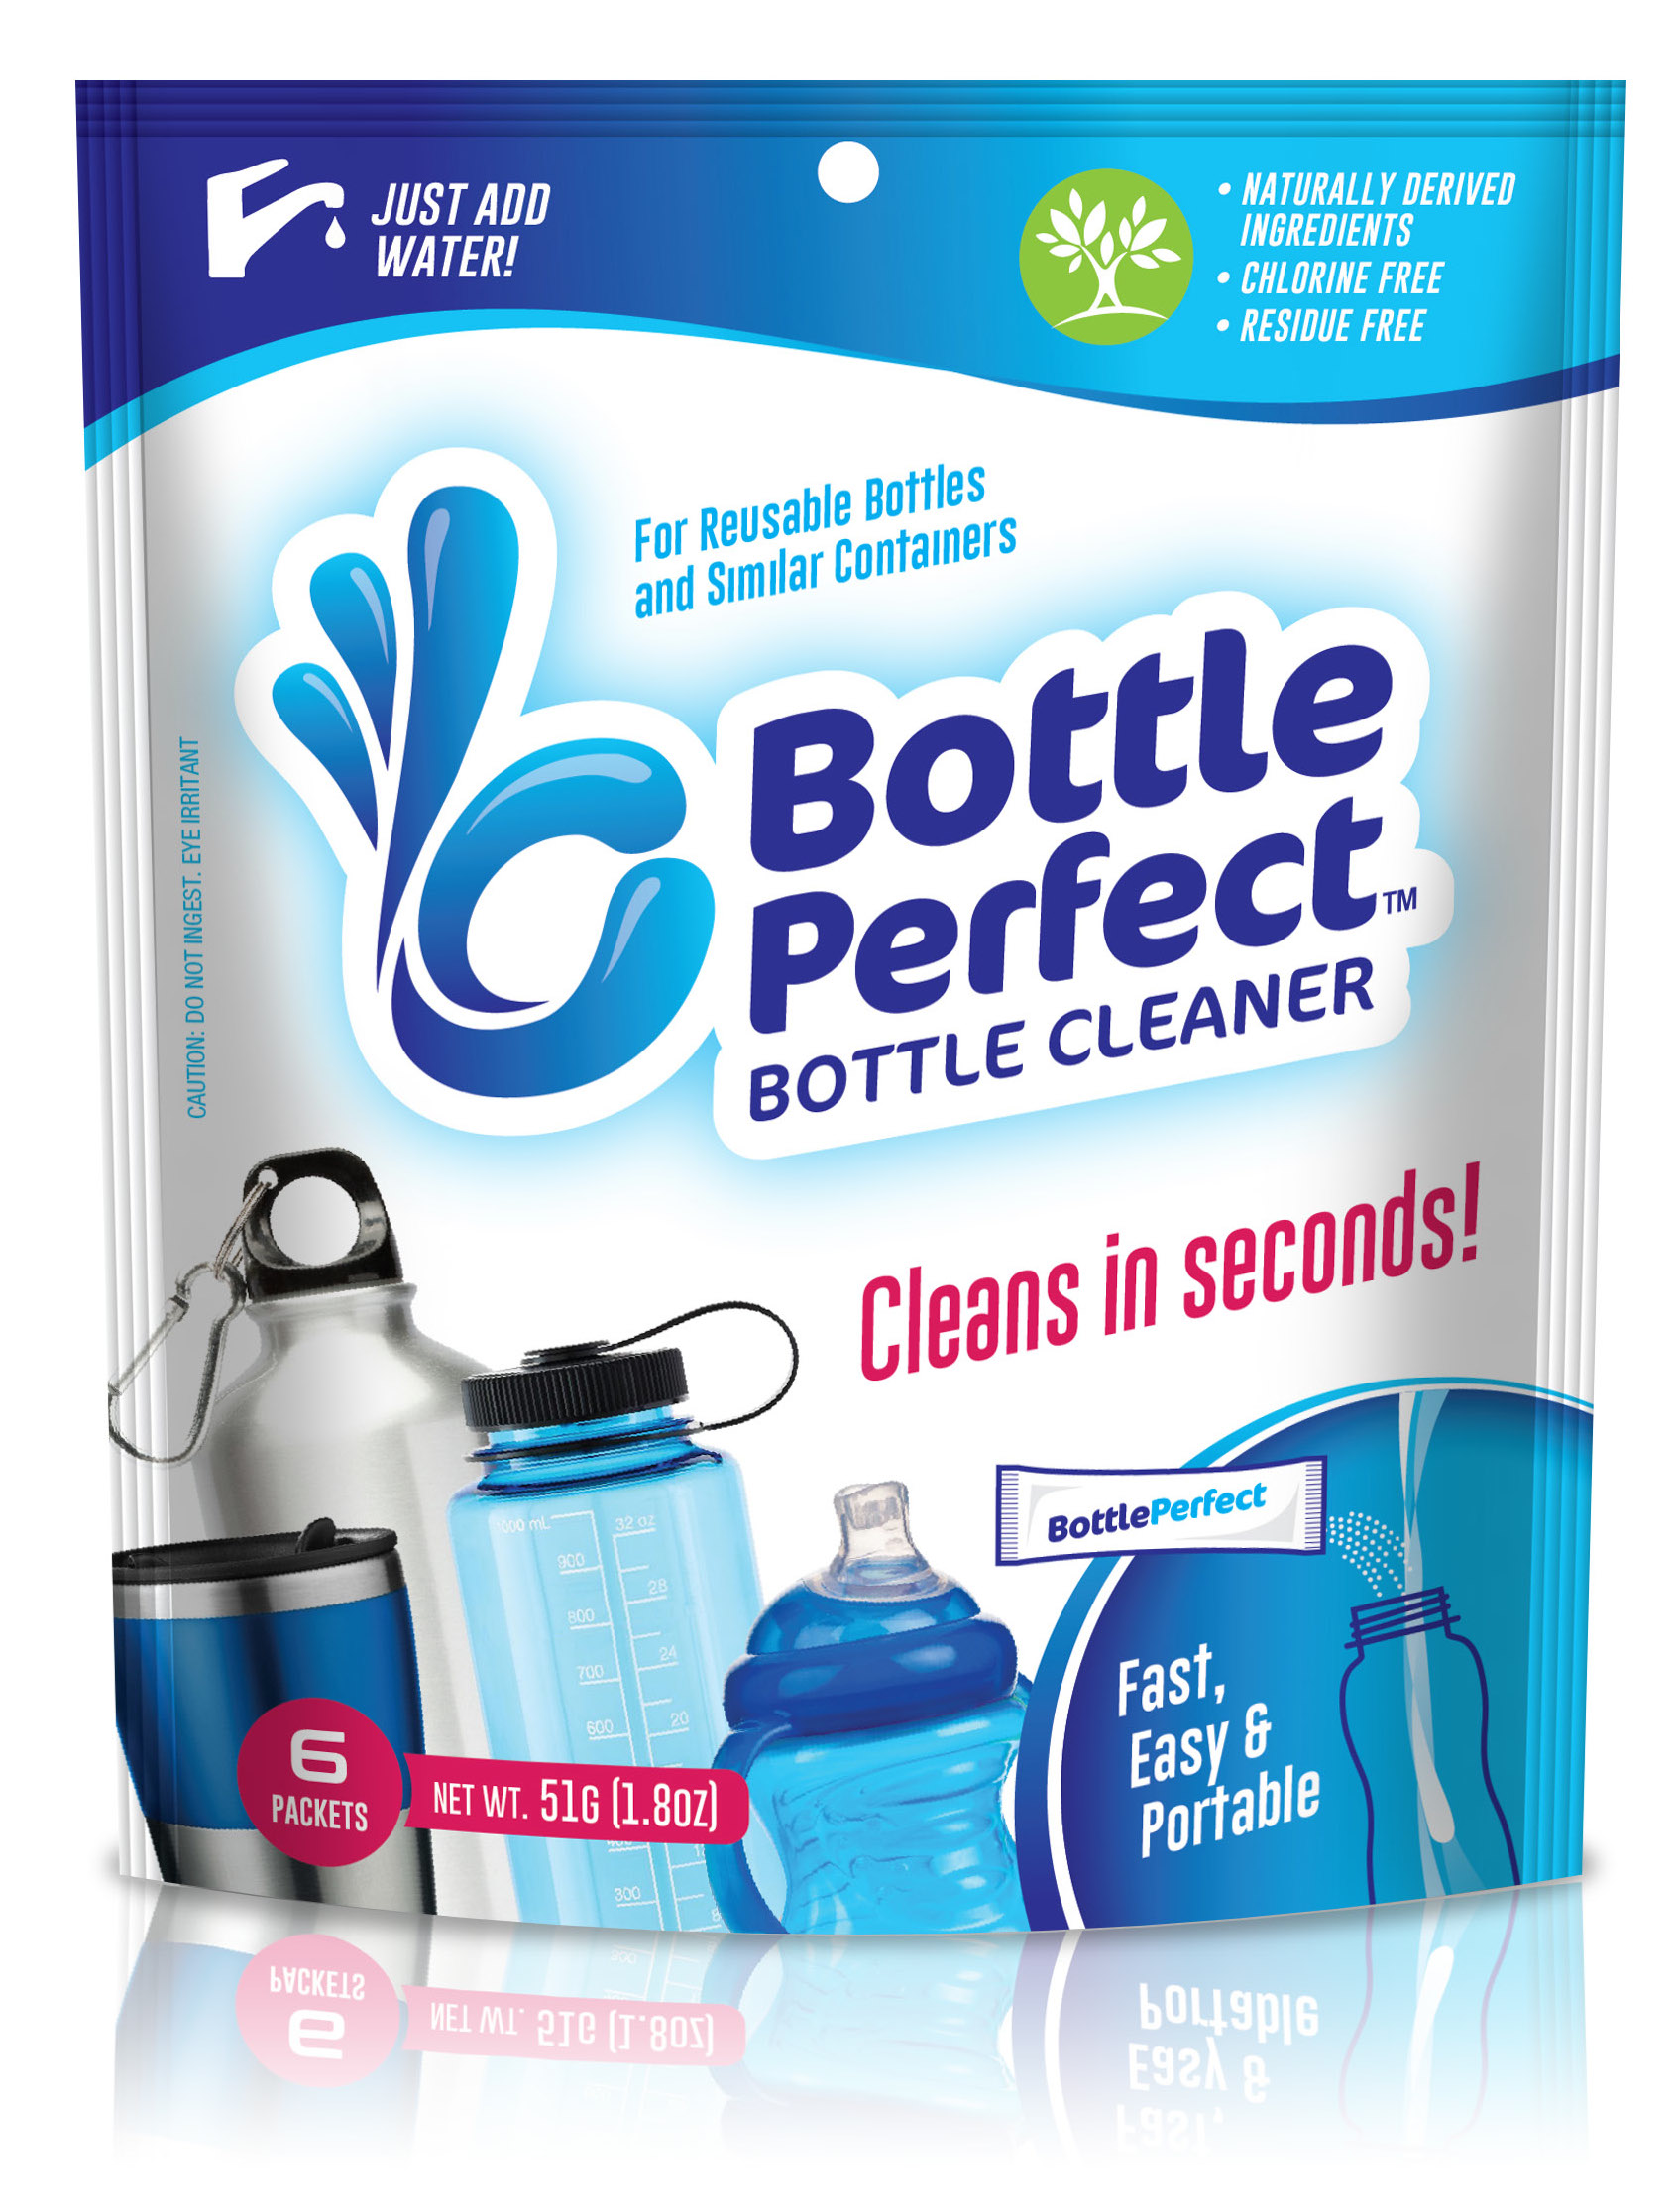 Cleans Bottles in Seconds! - Reusable bottles and similar containers can be difficult to clean. BottlePerfect™packets makes it easy to effectively clean anywhere, anytime. Removes stuck on stains, odors, and residues safely and effectively.